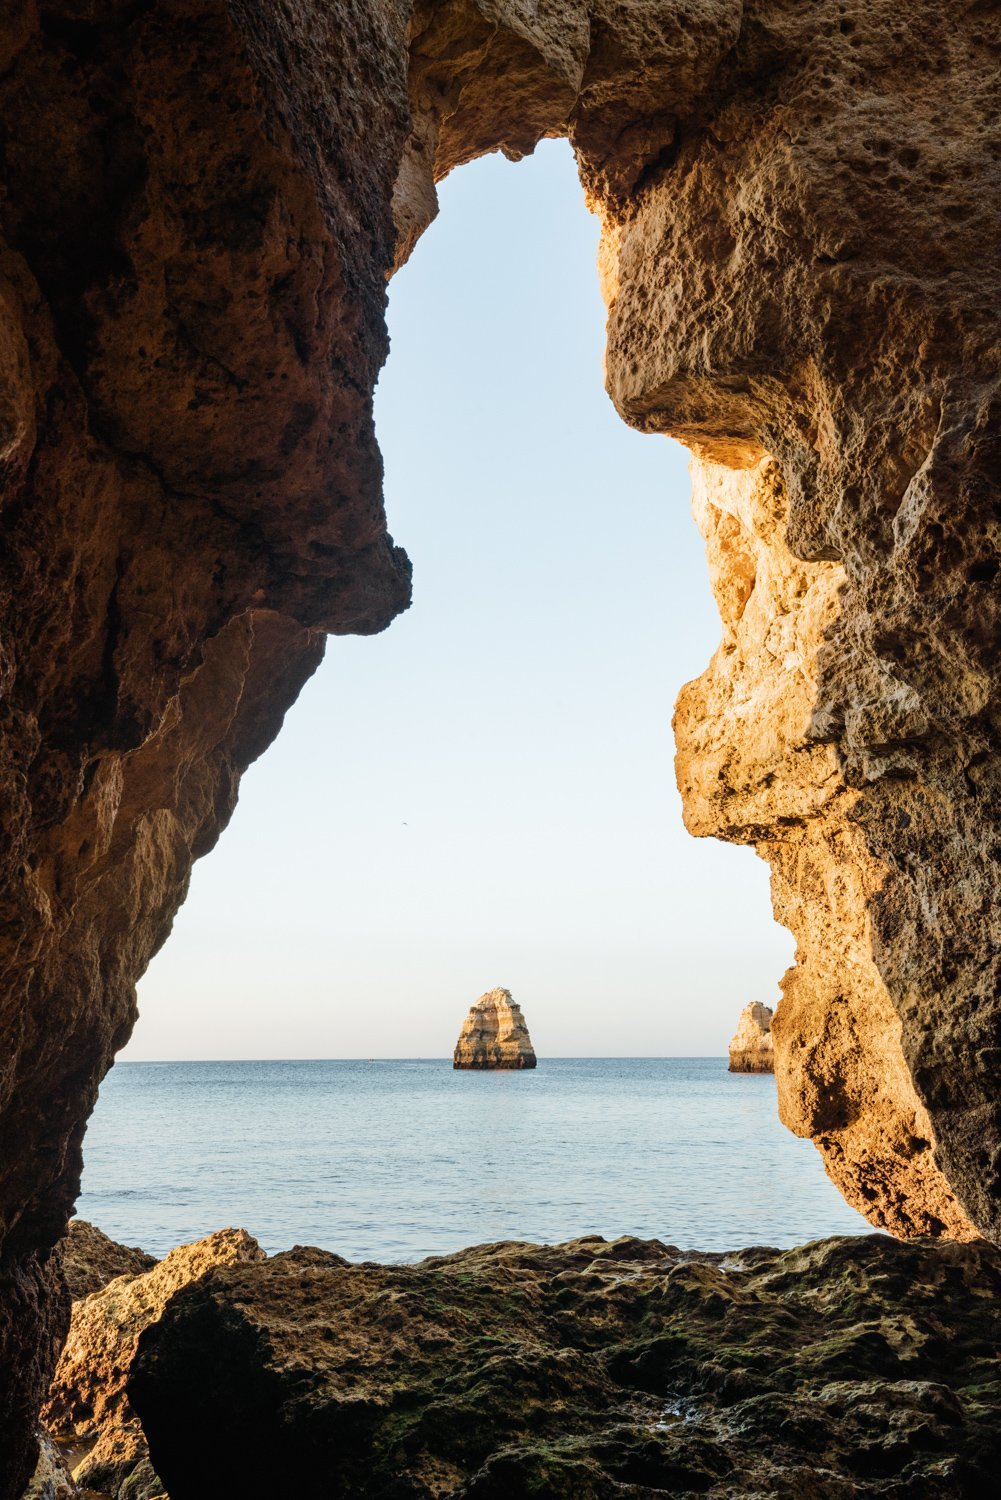 View out of a grotto in Lagos out to sea and cliff